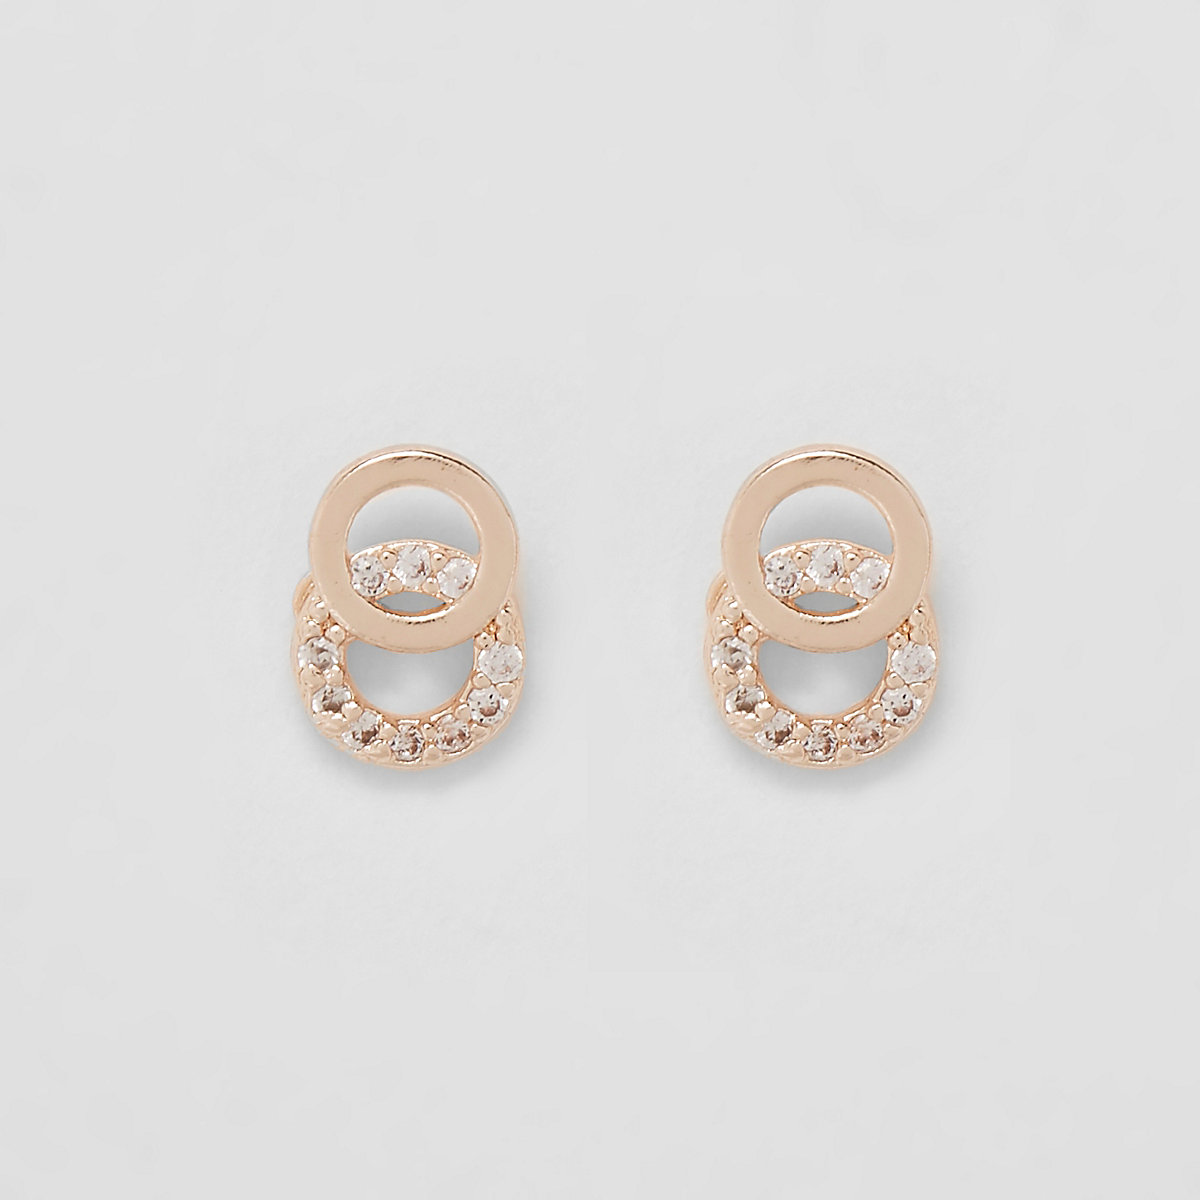 Gold plated circle stud earrings